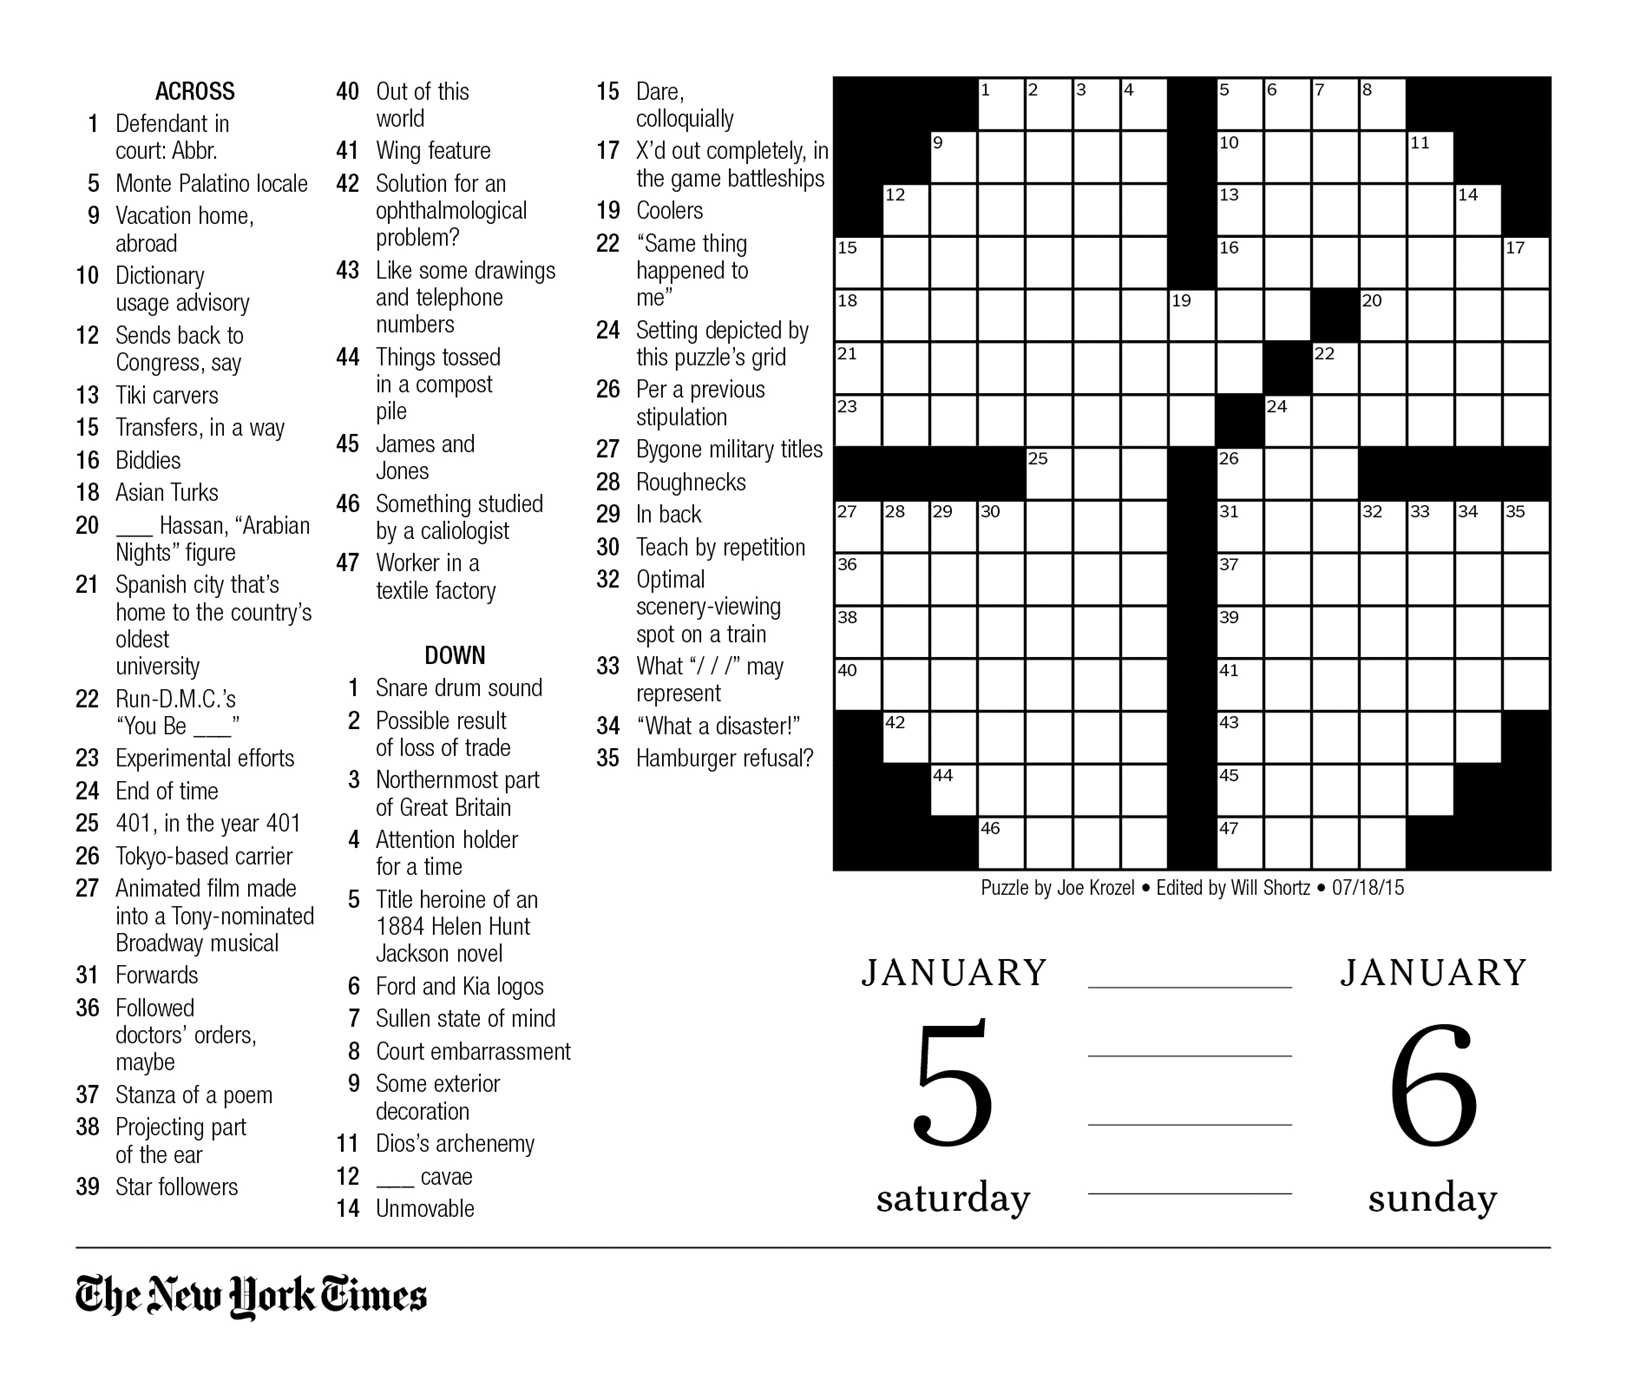 graphic about Printable Crossword Puzzles La Times identify The Clean York Periods Crossword Puzzles 2019 Working day-towards-Working day